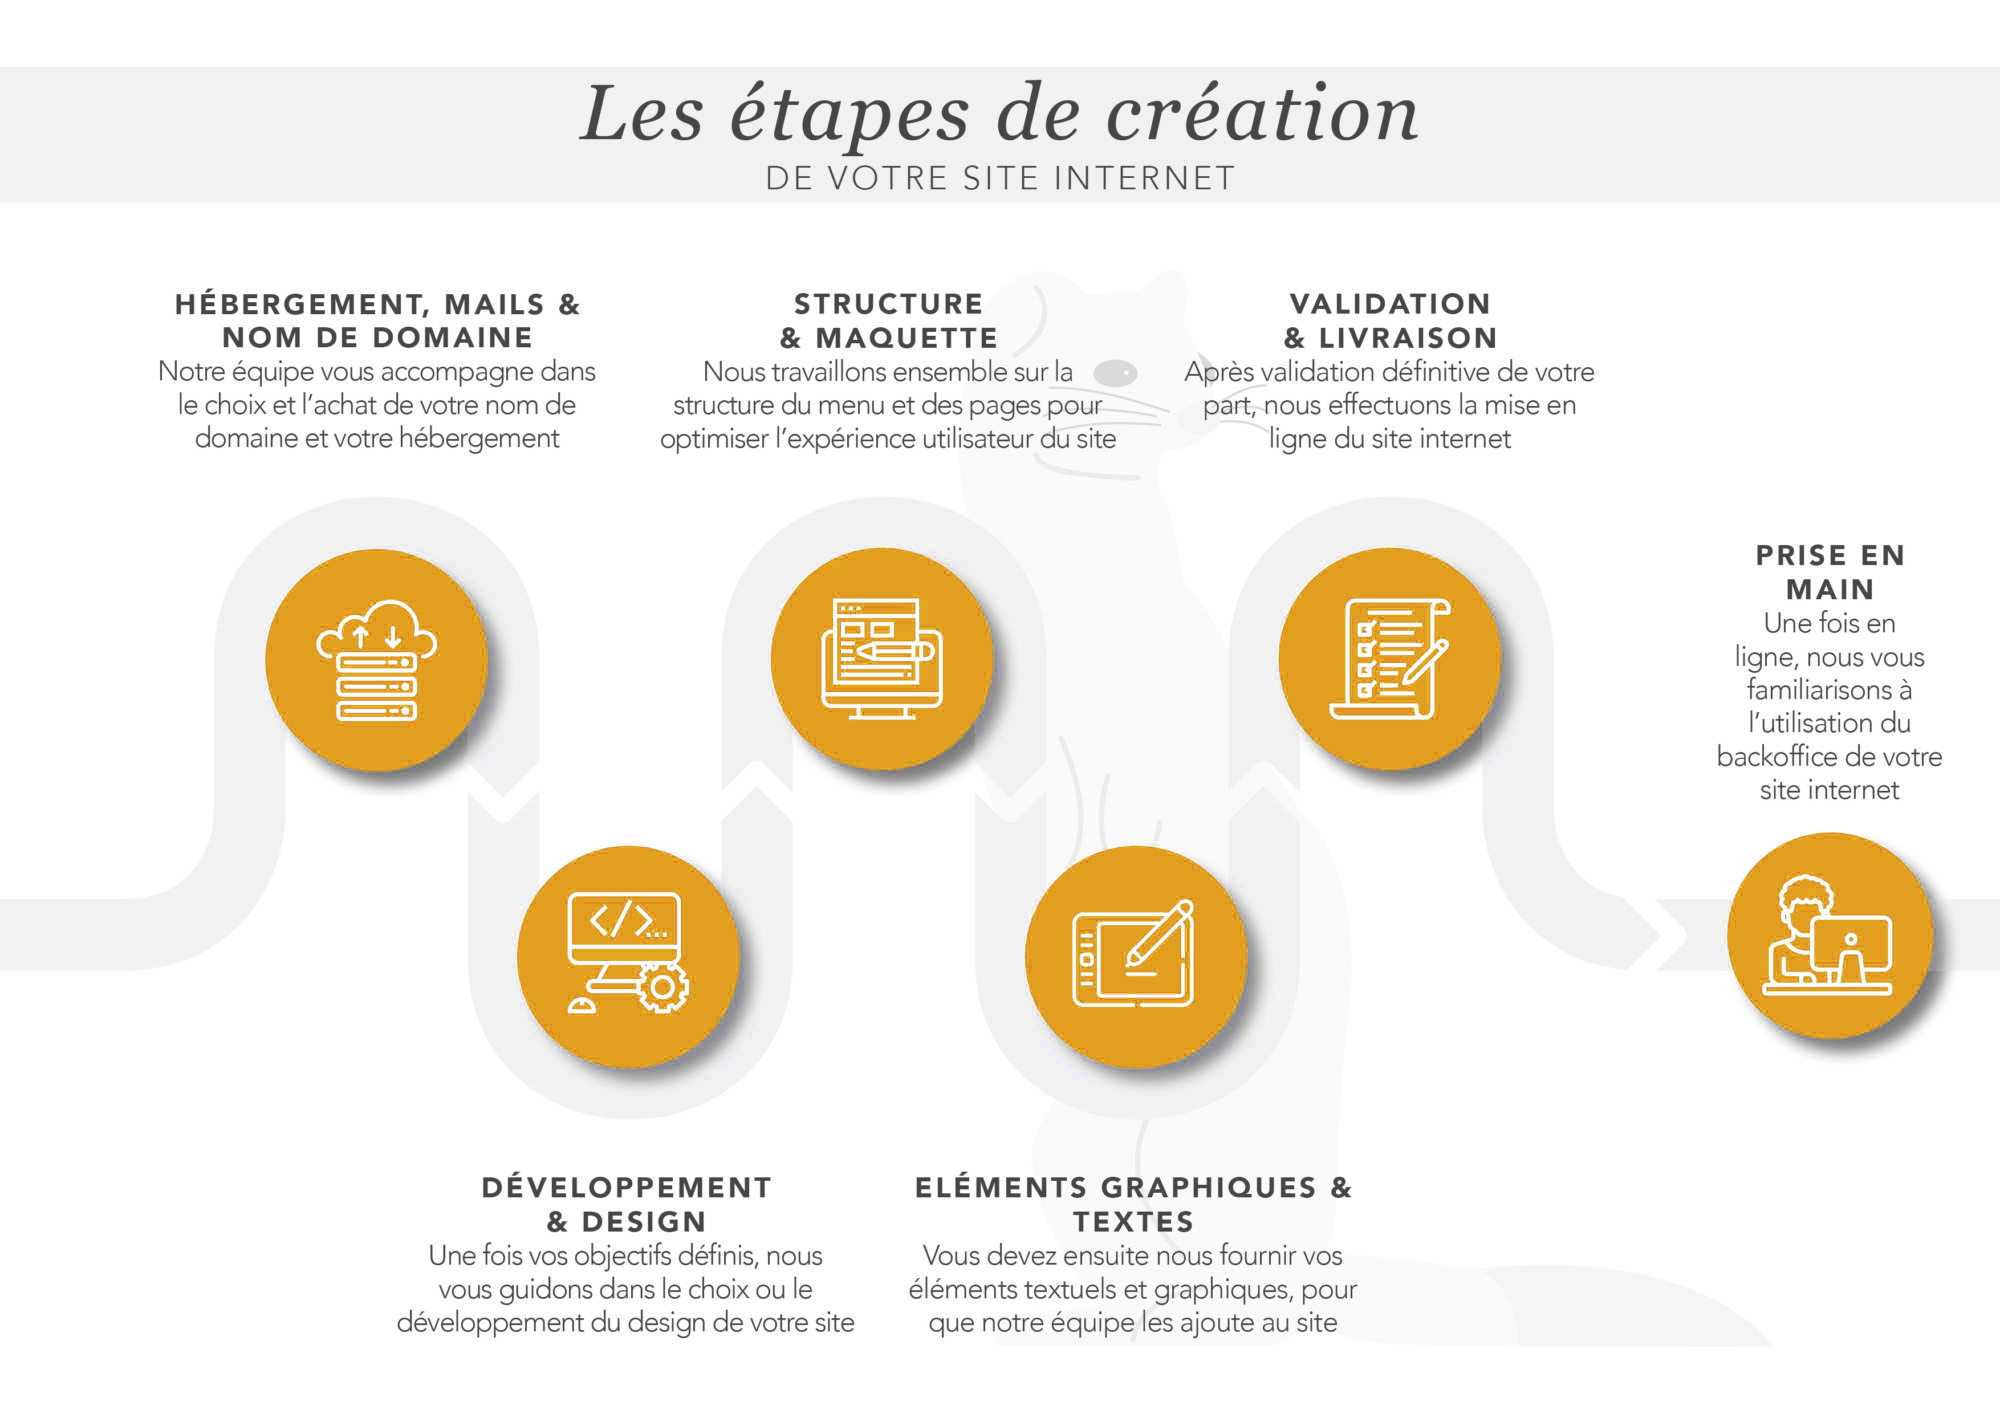 LES ETAPES DE CREATION DE SITE WEB